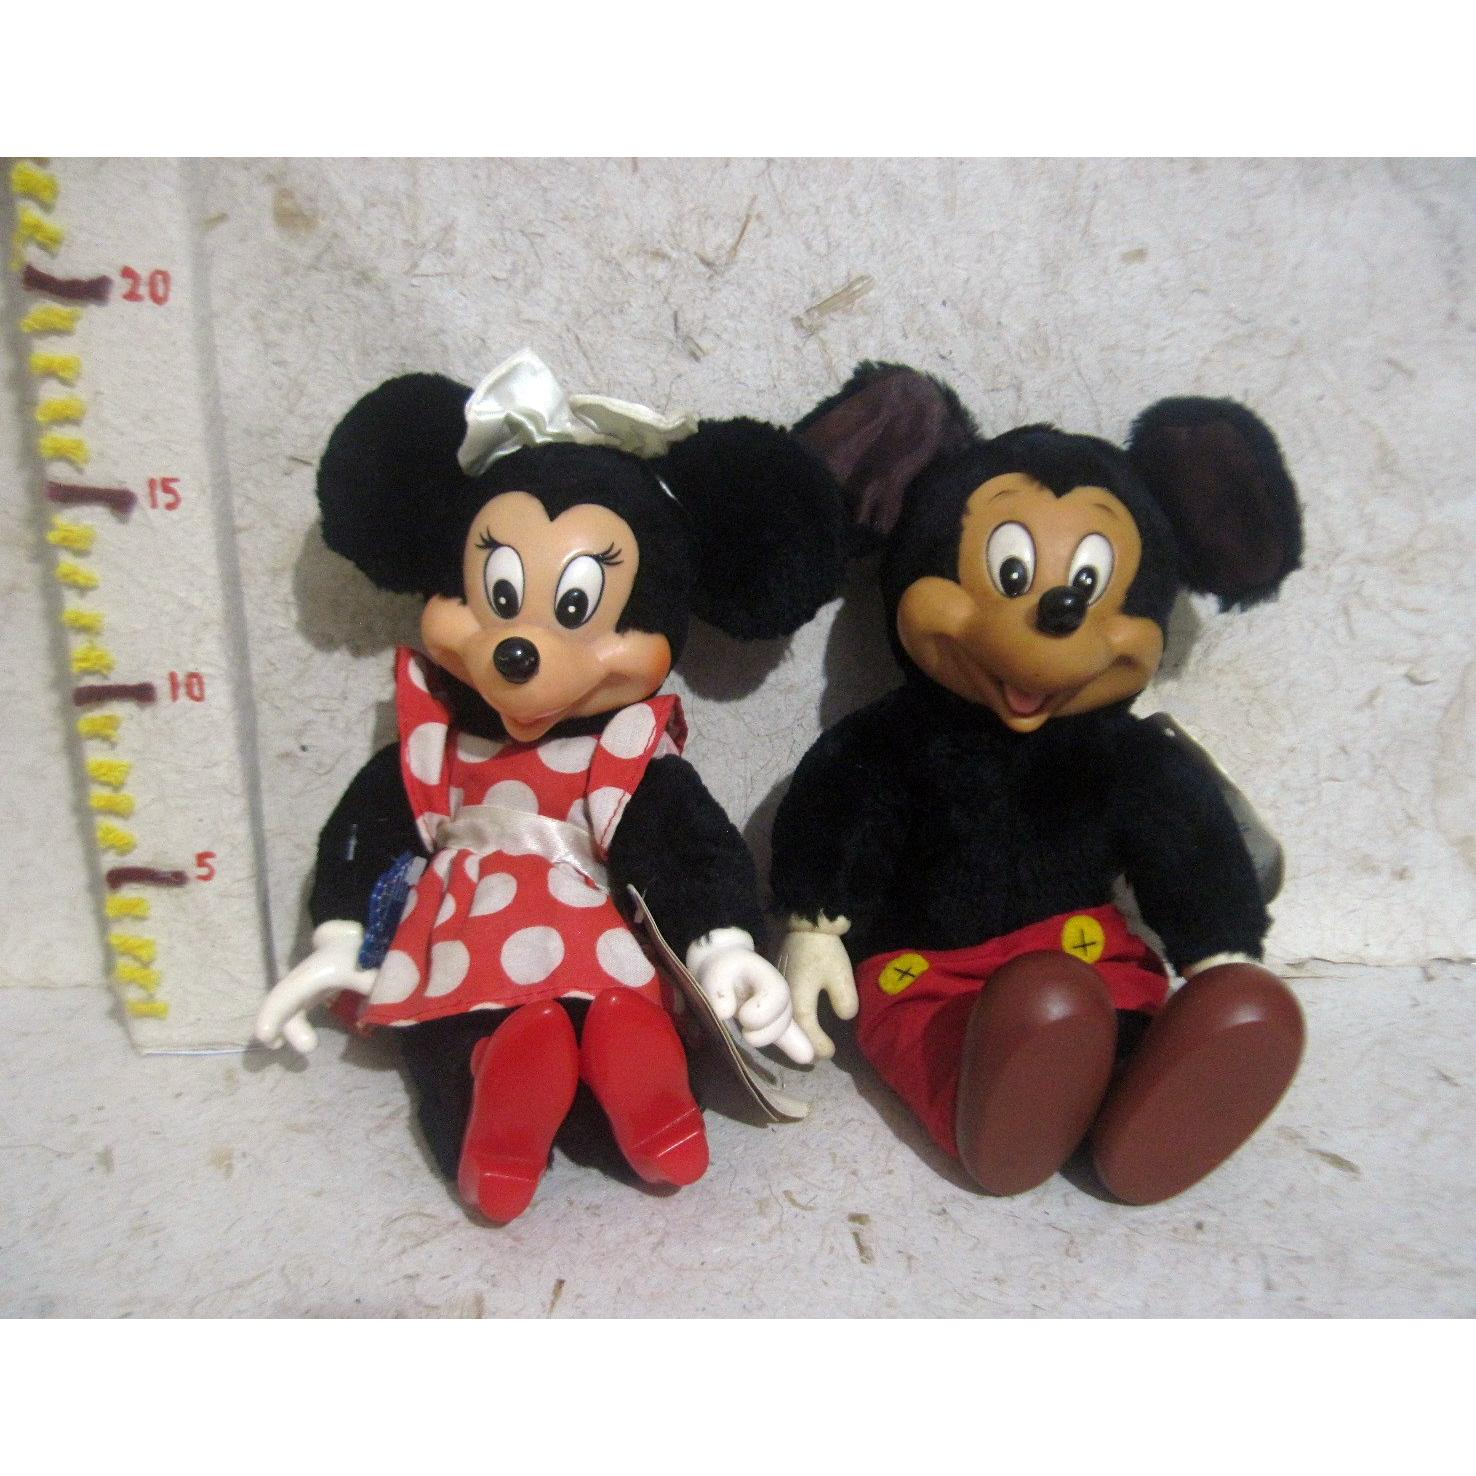 Boneka Mickey Mouse Minnie Mouse Original Disney Applause 1981 Vintage  Classic 565358aef6